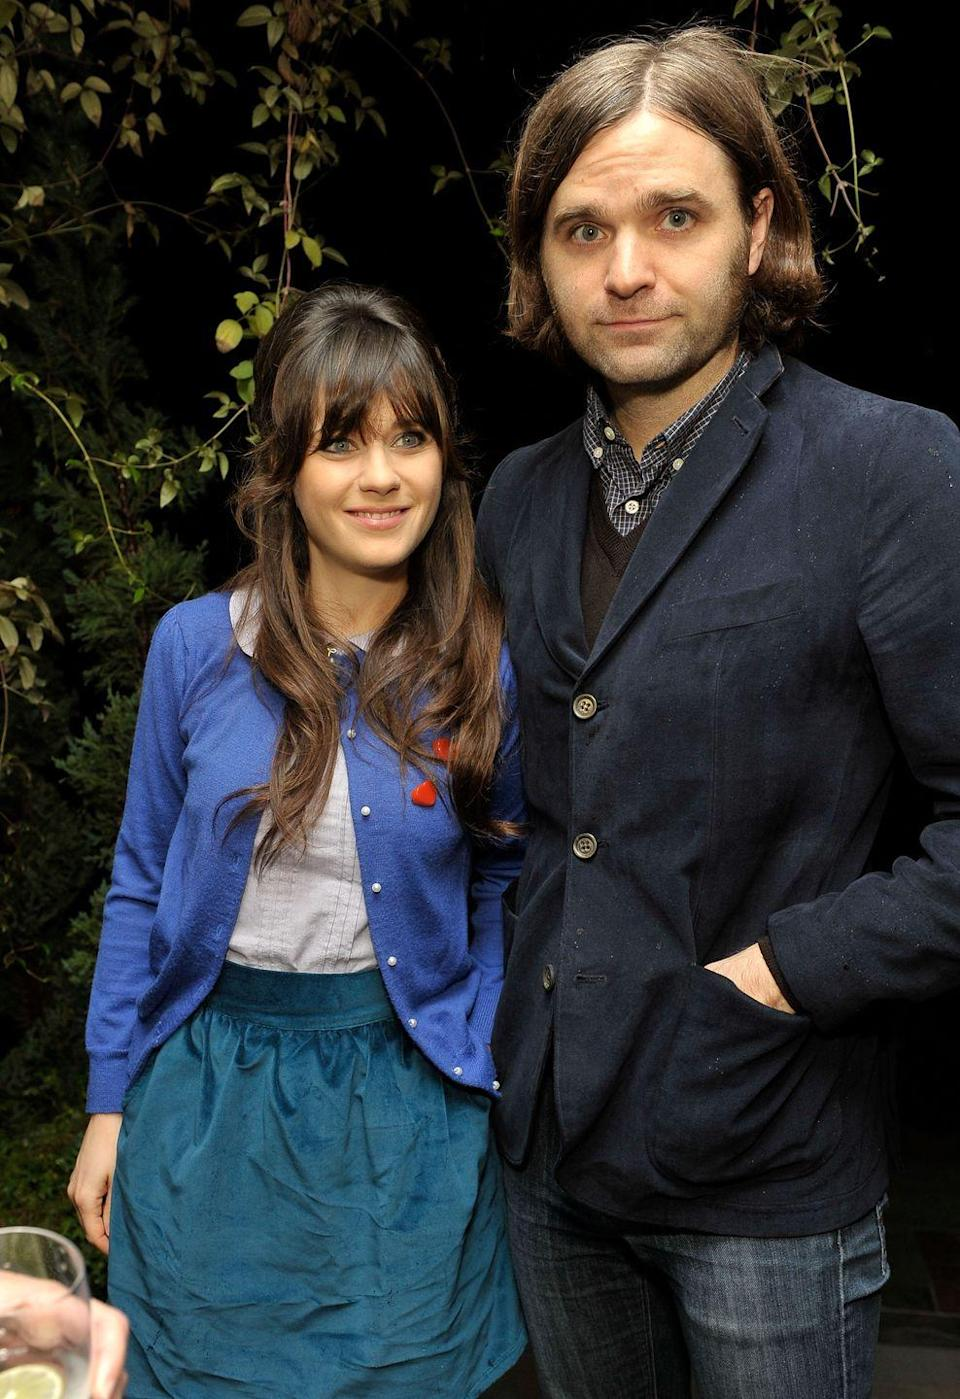 """<p>Zooey and the Death Cab for Cutie frontman got married in September 2009 after being introduced by their mutual music manager. """"I'd seen her movies and obviously, I thought she was very beautiful,"""" Ben told <a href=""""http://nymag.com/arts/tv/profiles/zooey-deschanel-2011-9/index2.html"""" rel=""""nofollow noopener"""" target=""""_blank"""" data-ylk=""""slk:New York magazine"""" class=""""link rapid-noclick-resp""""><em>New York</em> magazine</a>. """"I was just awestruck that she was even talking to me."""" Alas, it didn't last. The couple <a href=""""https://www.usmagazine.com/celebrity-news/news/zooey-deschanel-husband-ben-gibbard-split-2011111/"""" rel=""""nofollow noopener"""" target=""""_blank"""" data-ylk=""""slk:announced"""" class=""""link rapid-noclick-resp"""">announced</a> their separation in November 2011.</p>"""